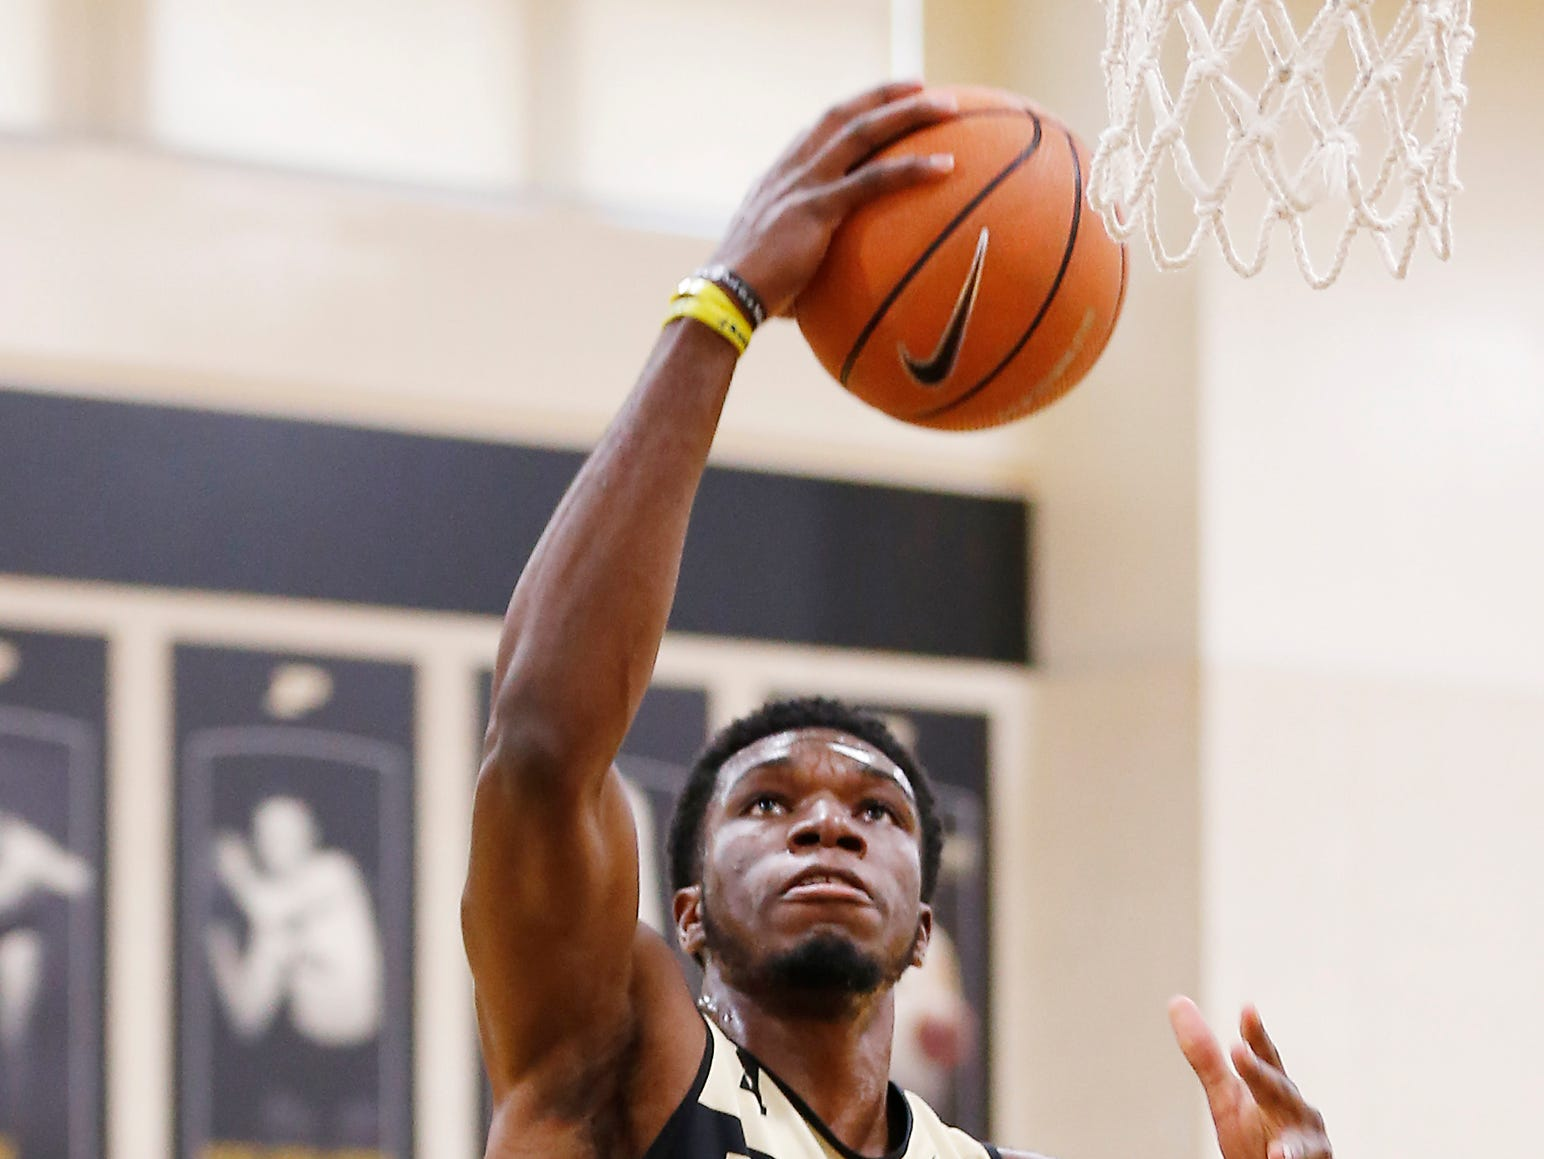 Emmanuel Dowuona with a layup during the first official practice of the season for Purdue men's basketball Tuesday, September 25, 2018, at Cardinal Court in Mackey Arena.